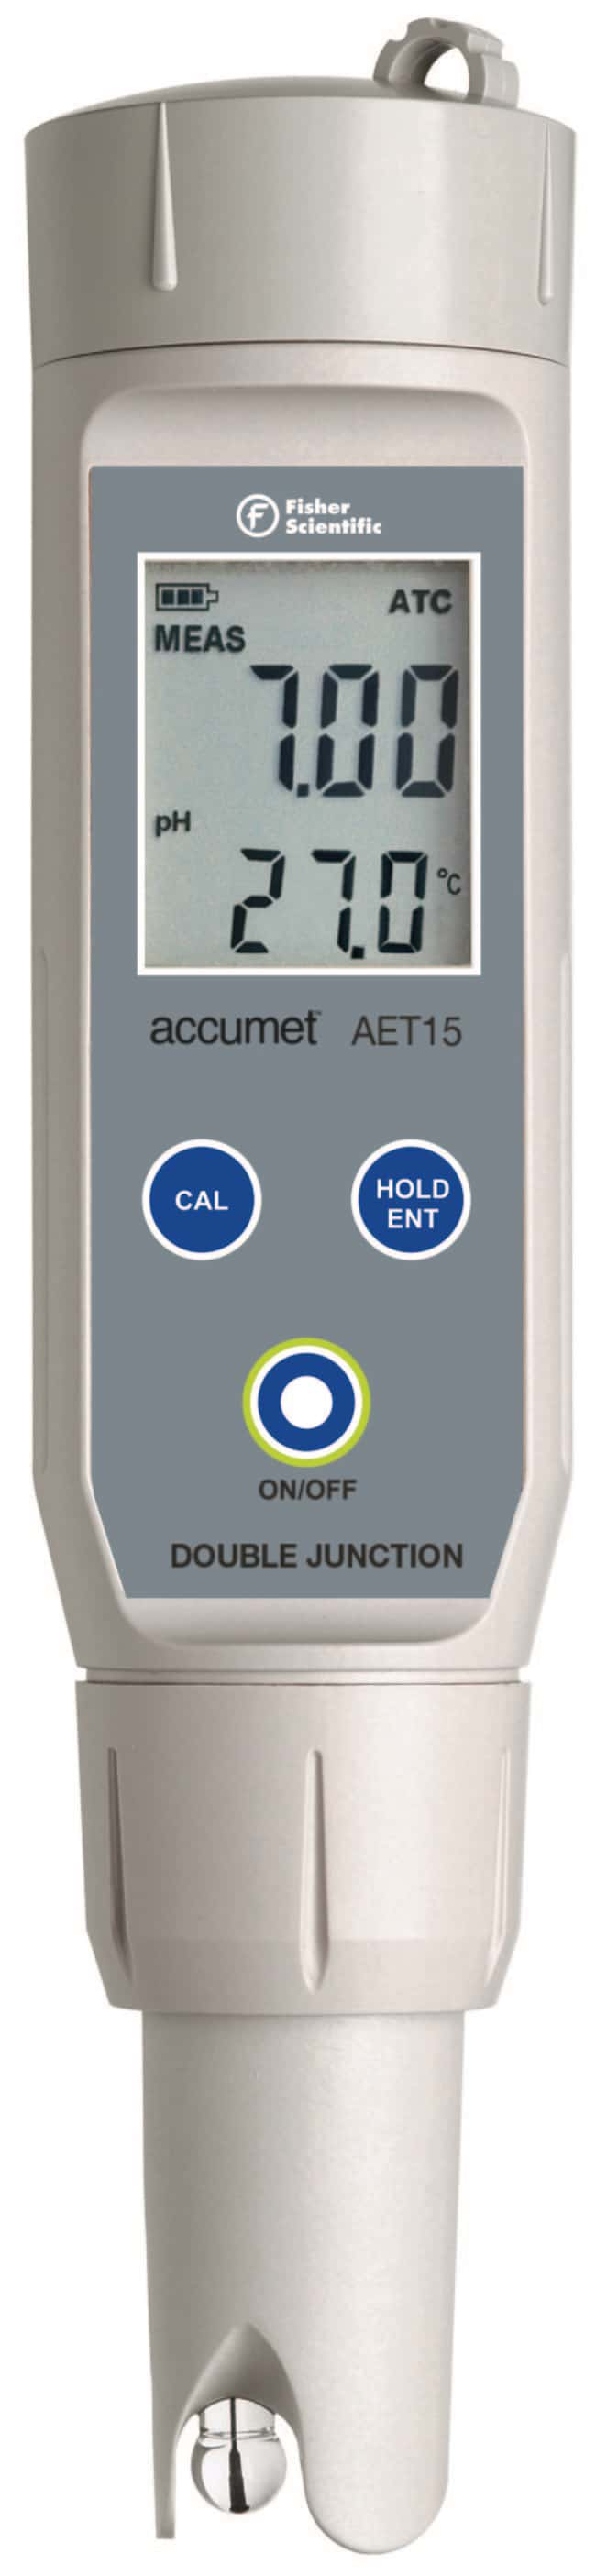 Fisherbrand™ accumet™ AET15 pH Tester